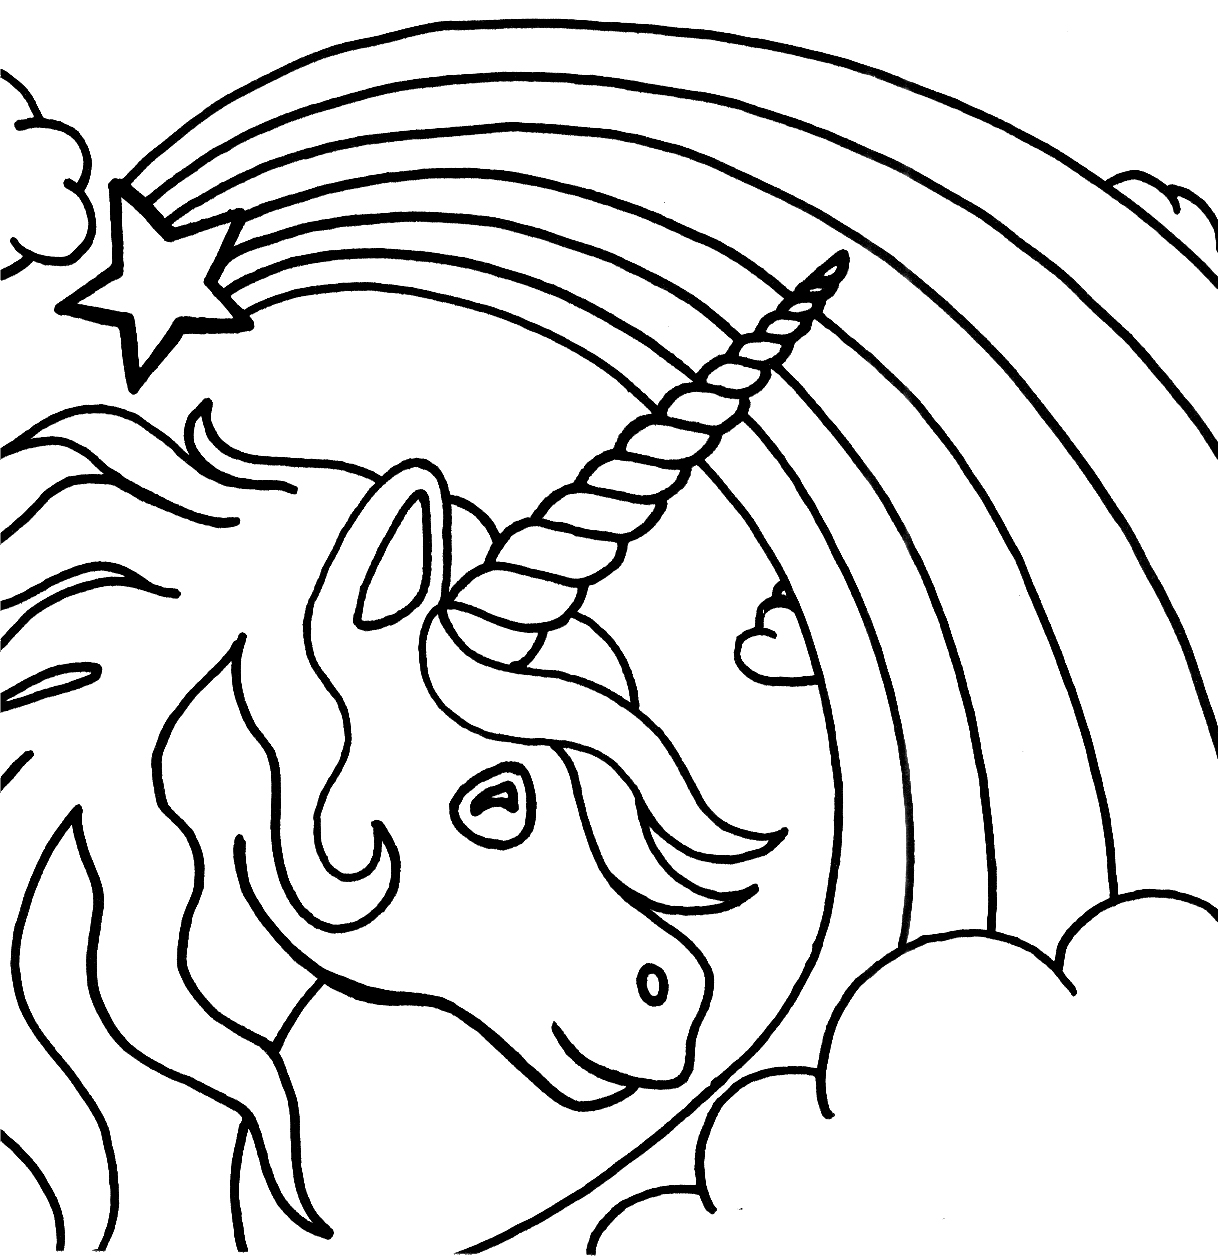 unicorn coloring pages for kids pokemon pikachu and friends